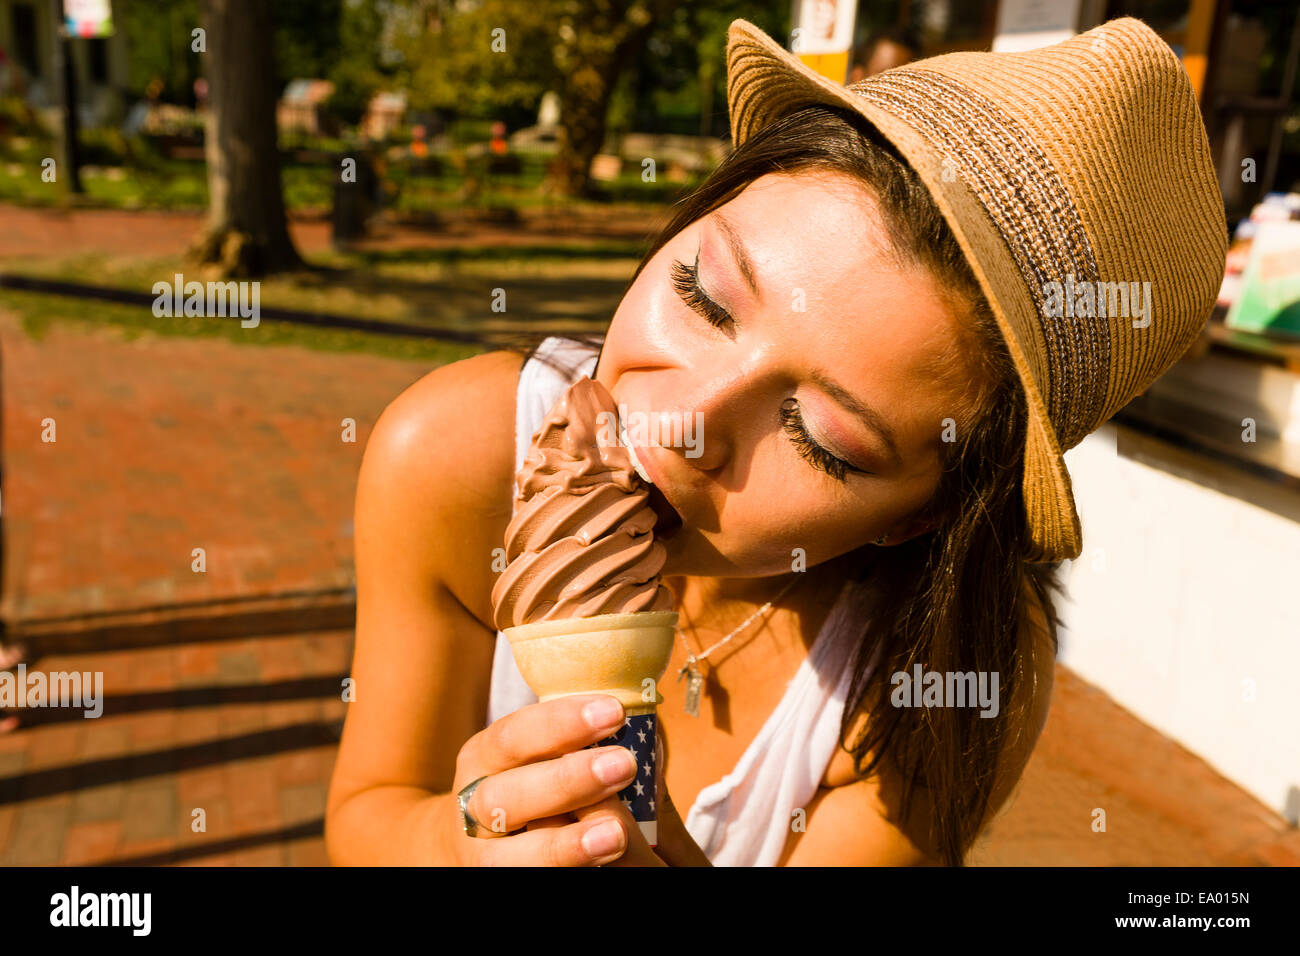 Young woman eating ice cream cone in park Stock Photo